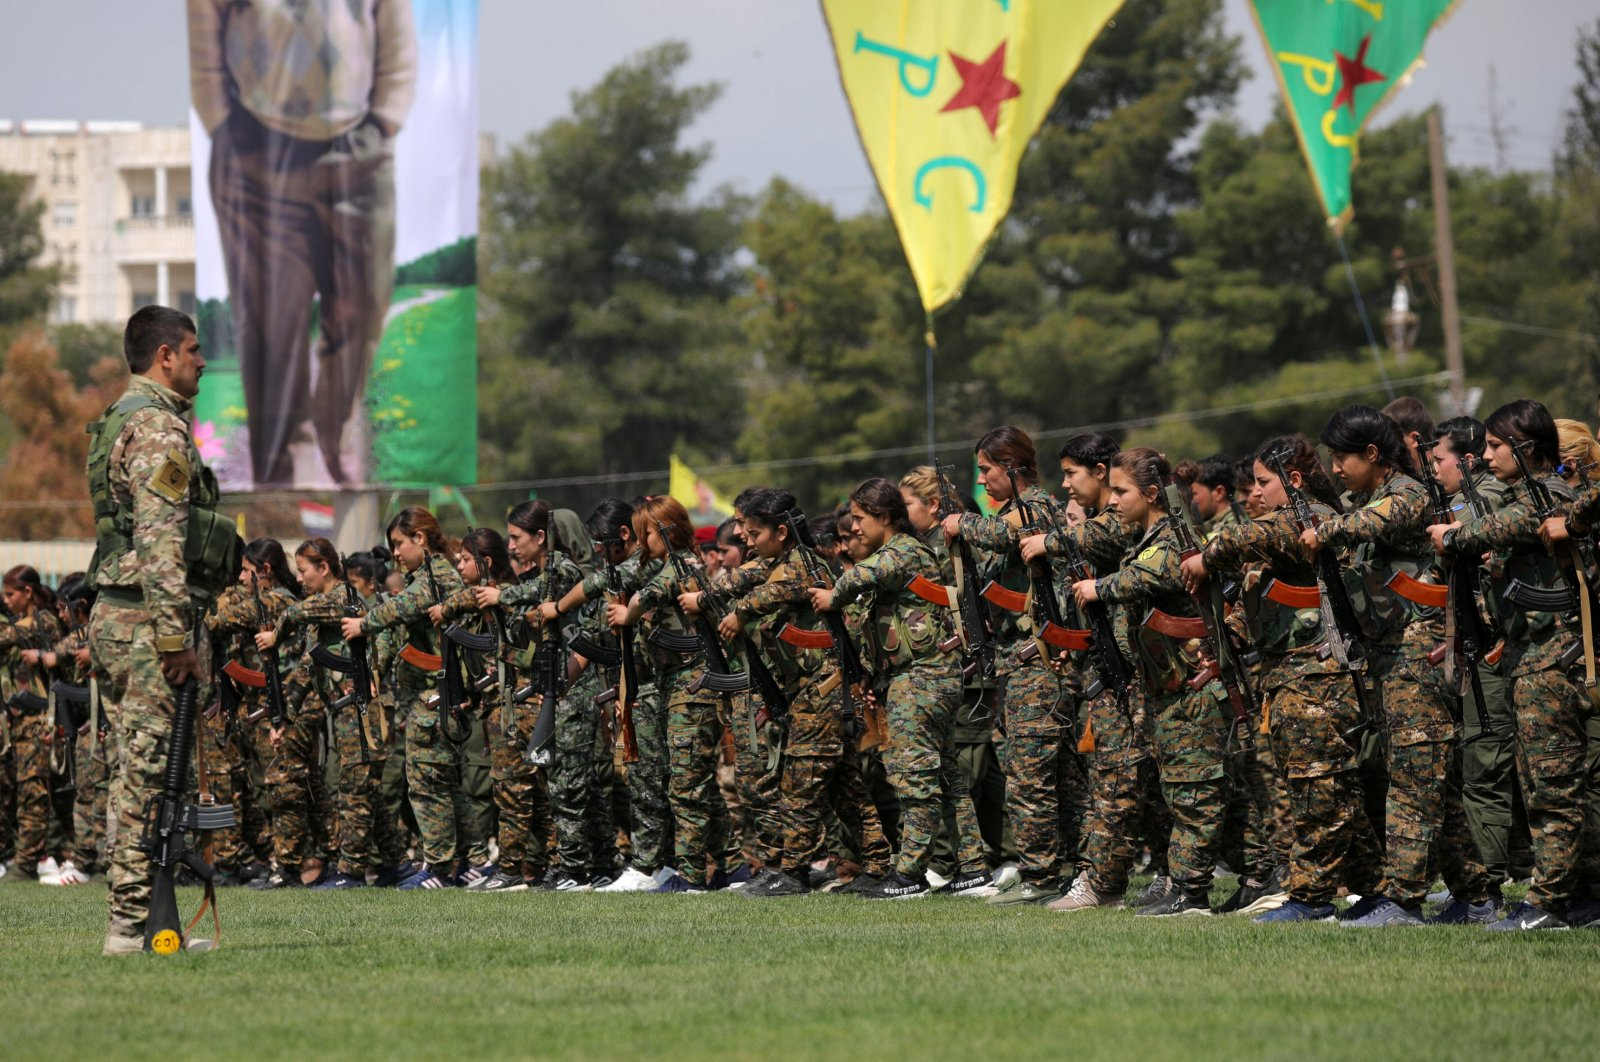 YPG terrorists stand near a banner depicting imprisoned PKK leader Abdullah Öcalan during a parade in Syria's Qamishli on March 28, 2019. (Reuters File Photo)